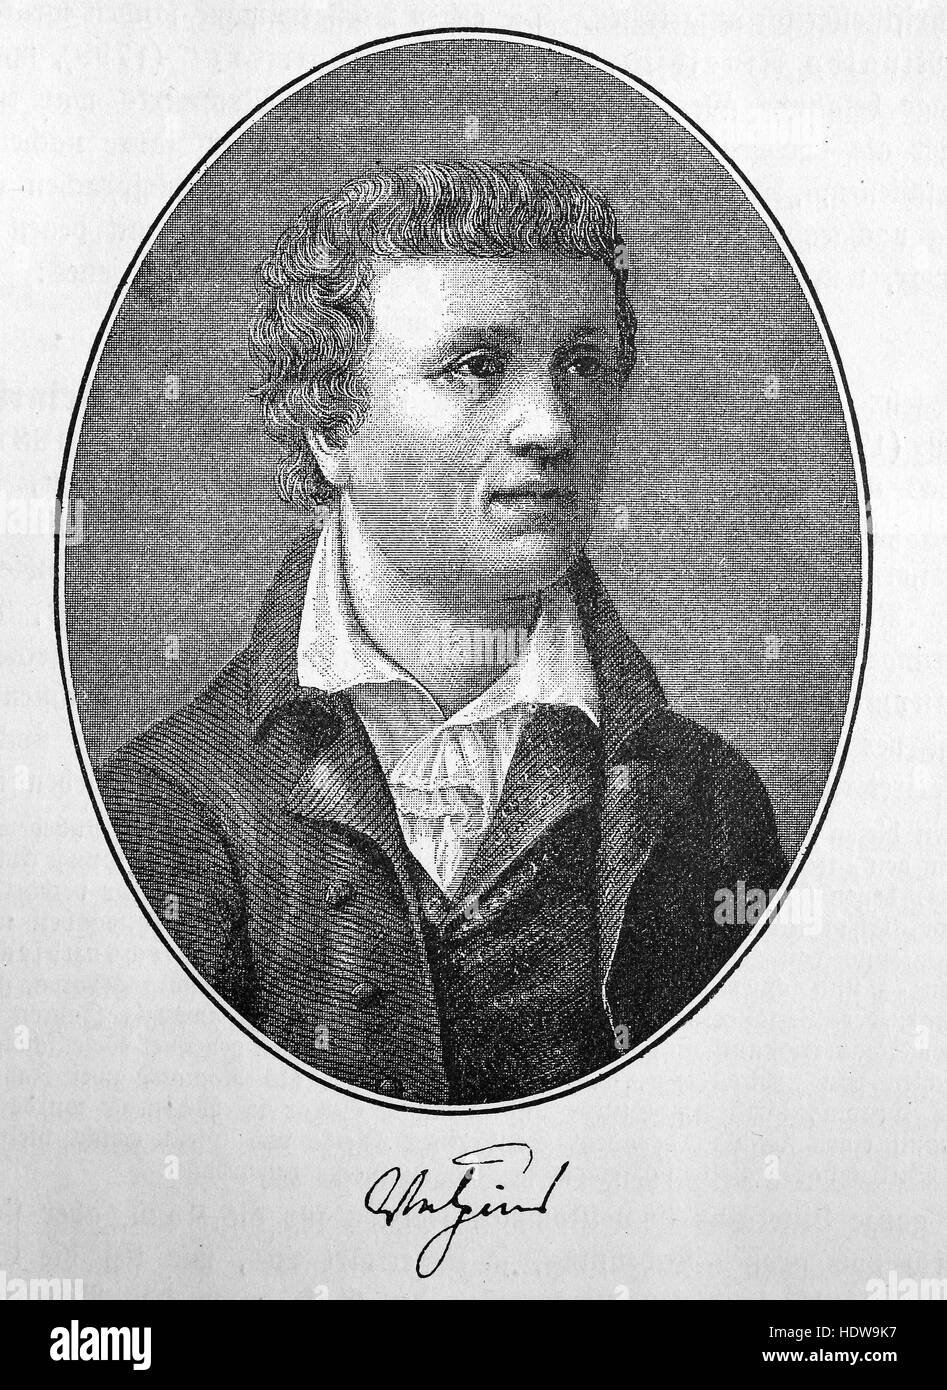 Christian August Vulpius,1762-1827, a German novelist and dramatist, woodcut from the year 1880 - Stock Image